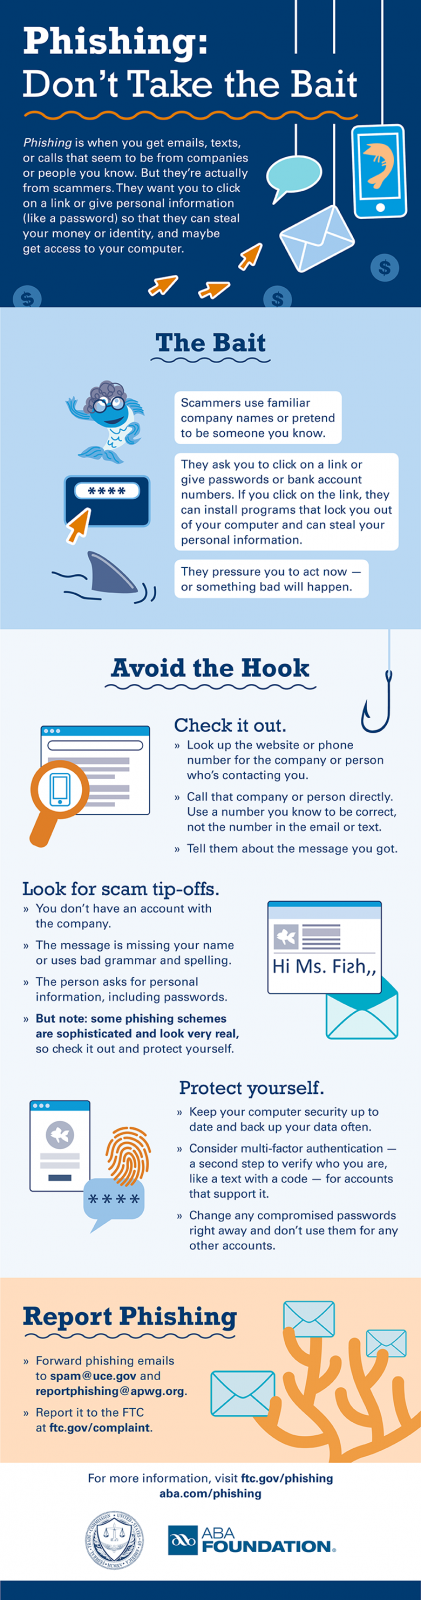 Phishing Infographic fraud protection online grb